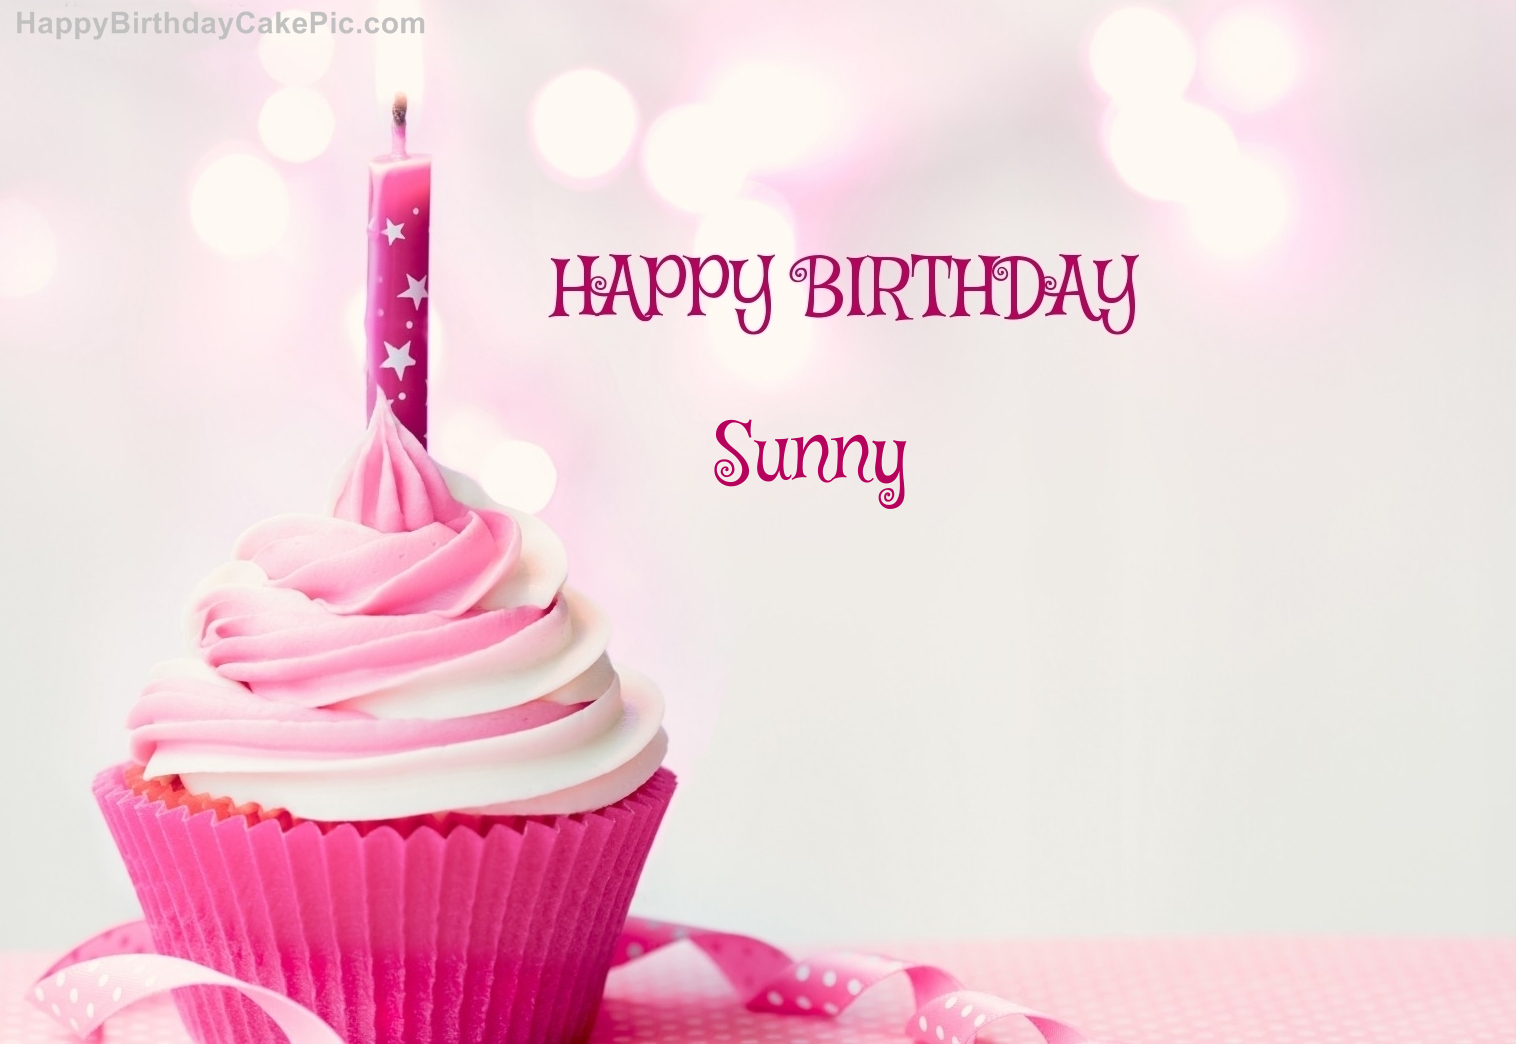 Birthday Cake Images With Name Sunny : Happy Birthday Cupcake Candle Pink Cake For Sunny